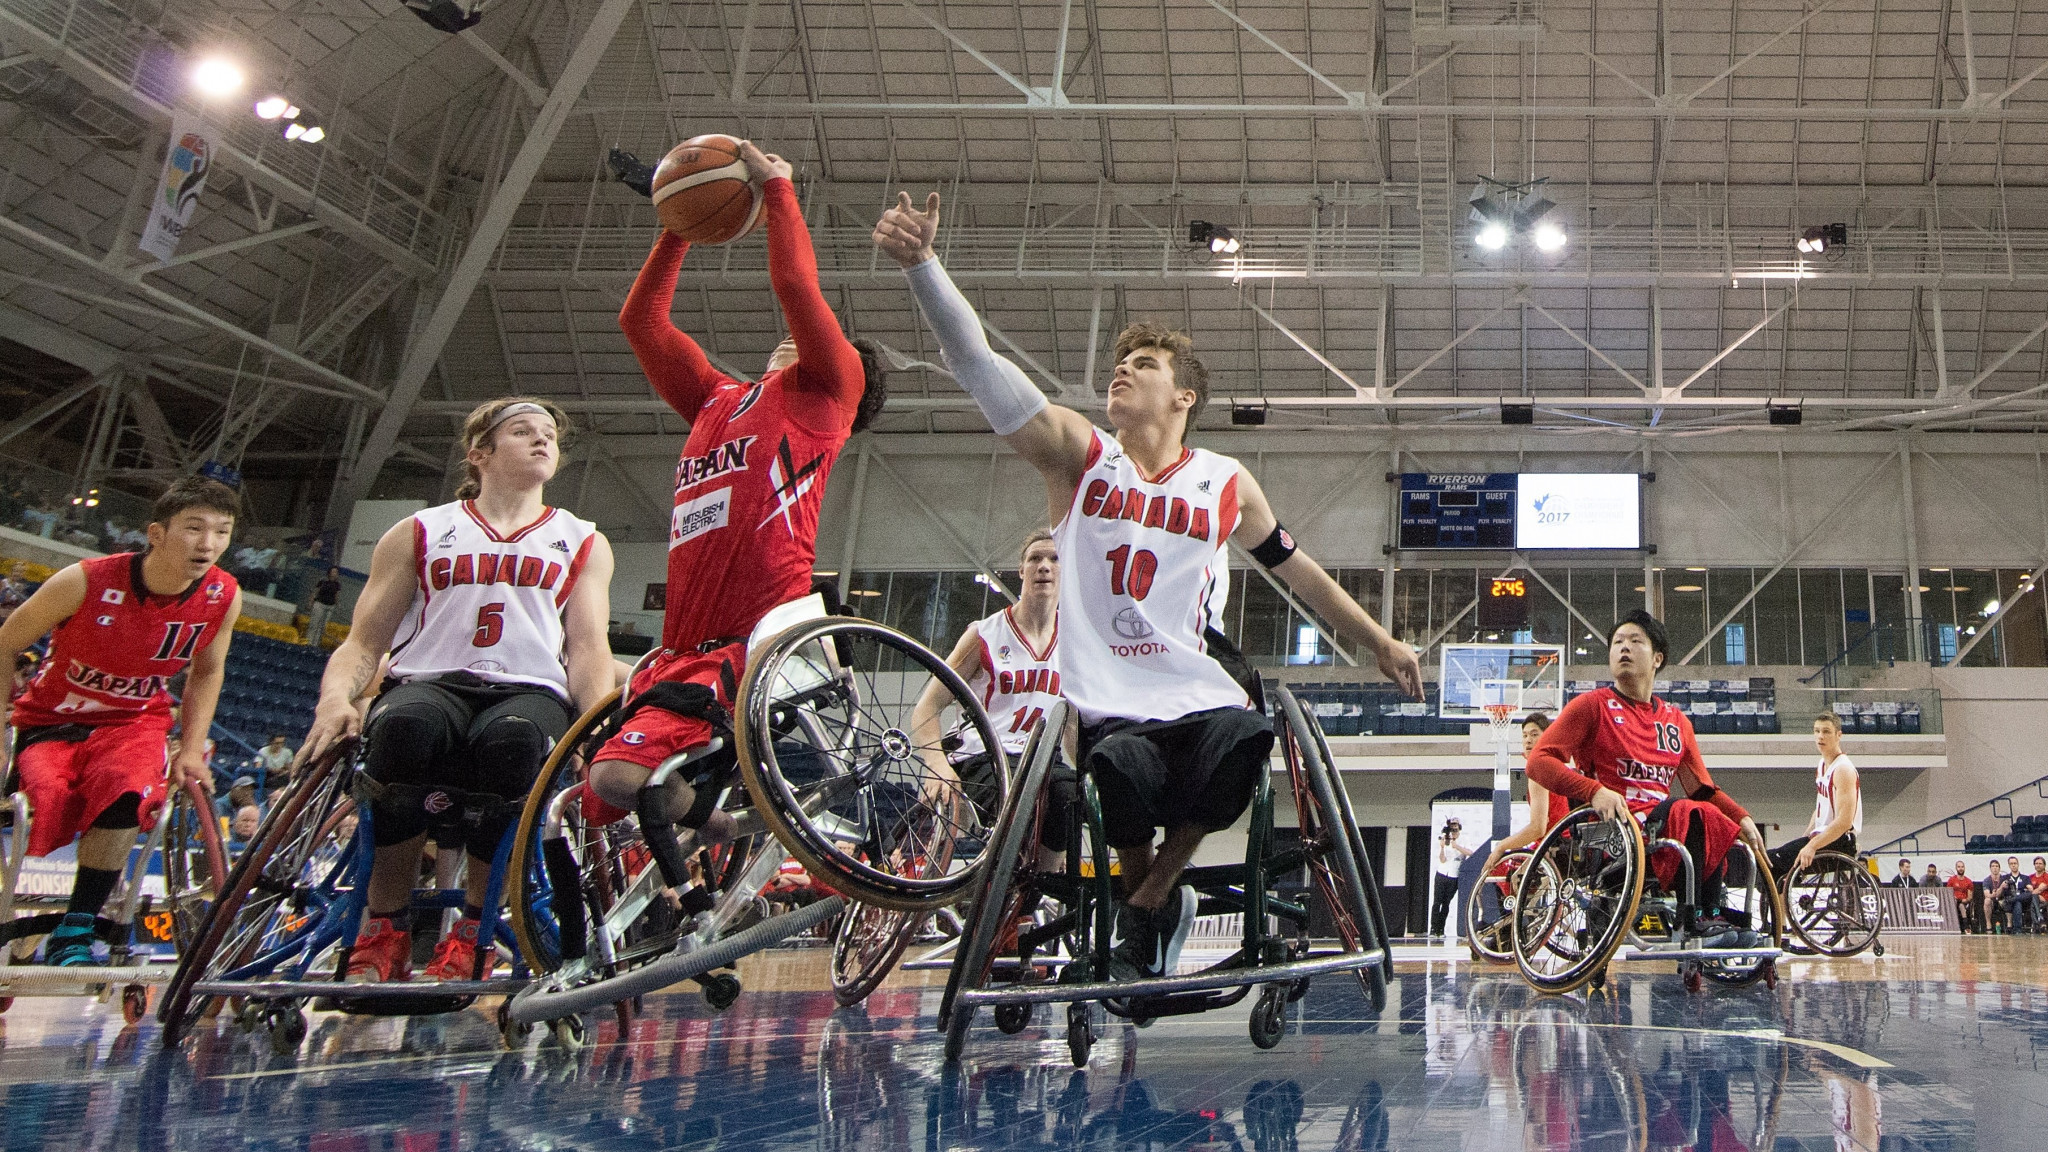 Japan is set to become the first country in Asia to stage the IWBF Under-23 Men's World Championship ©IWBF